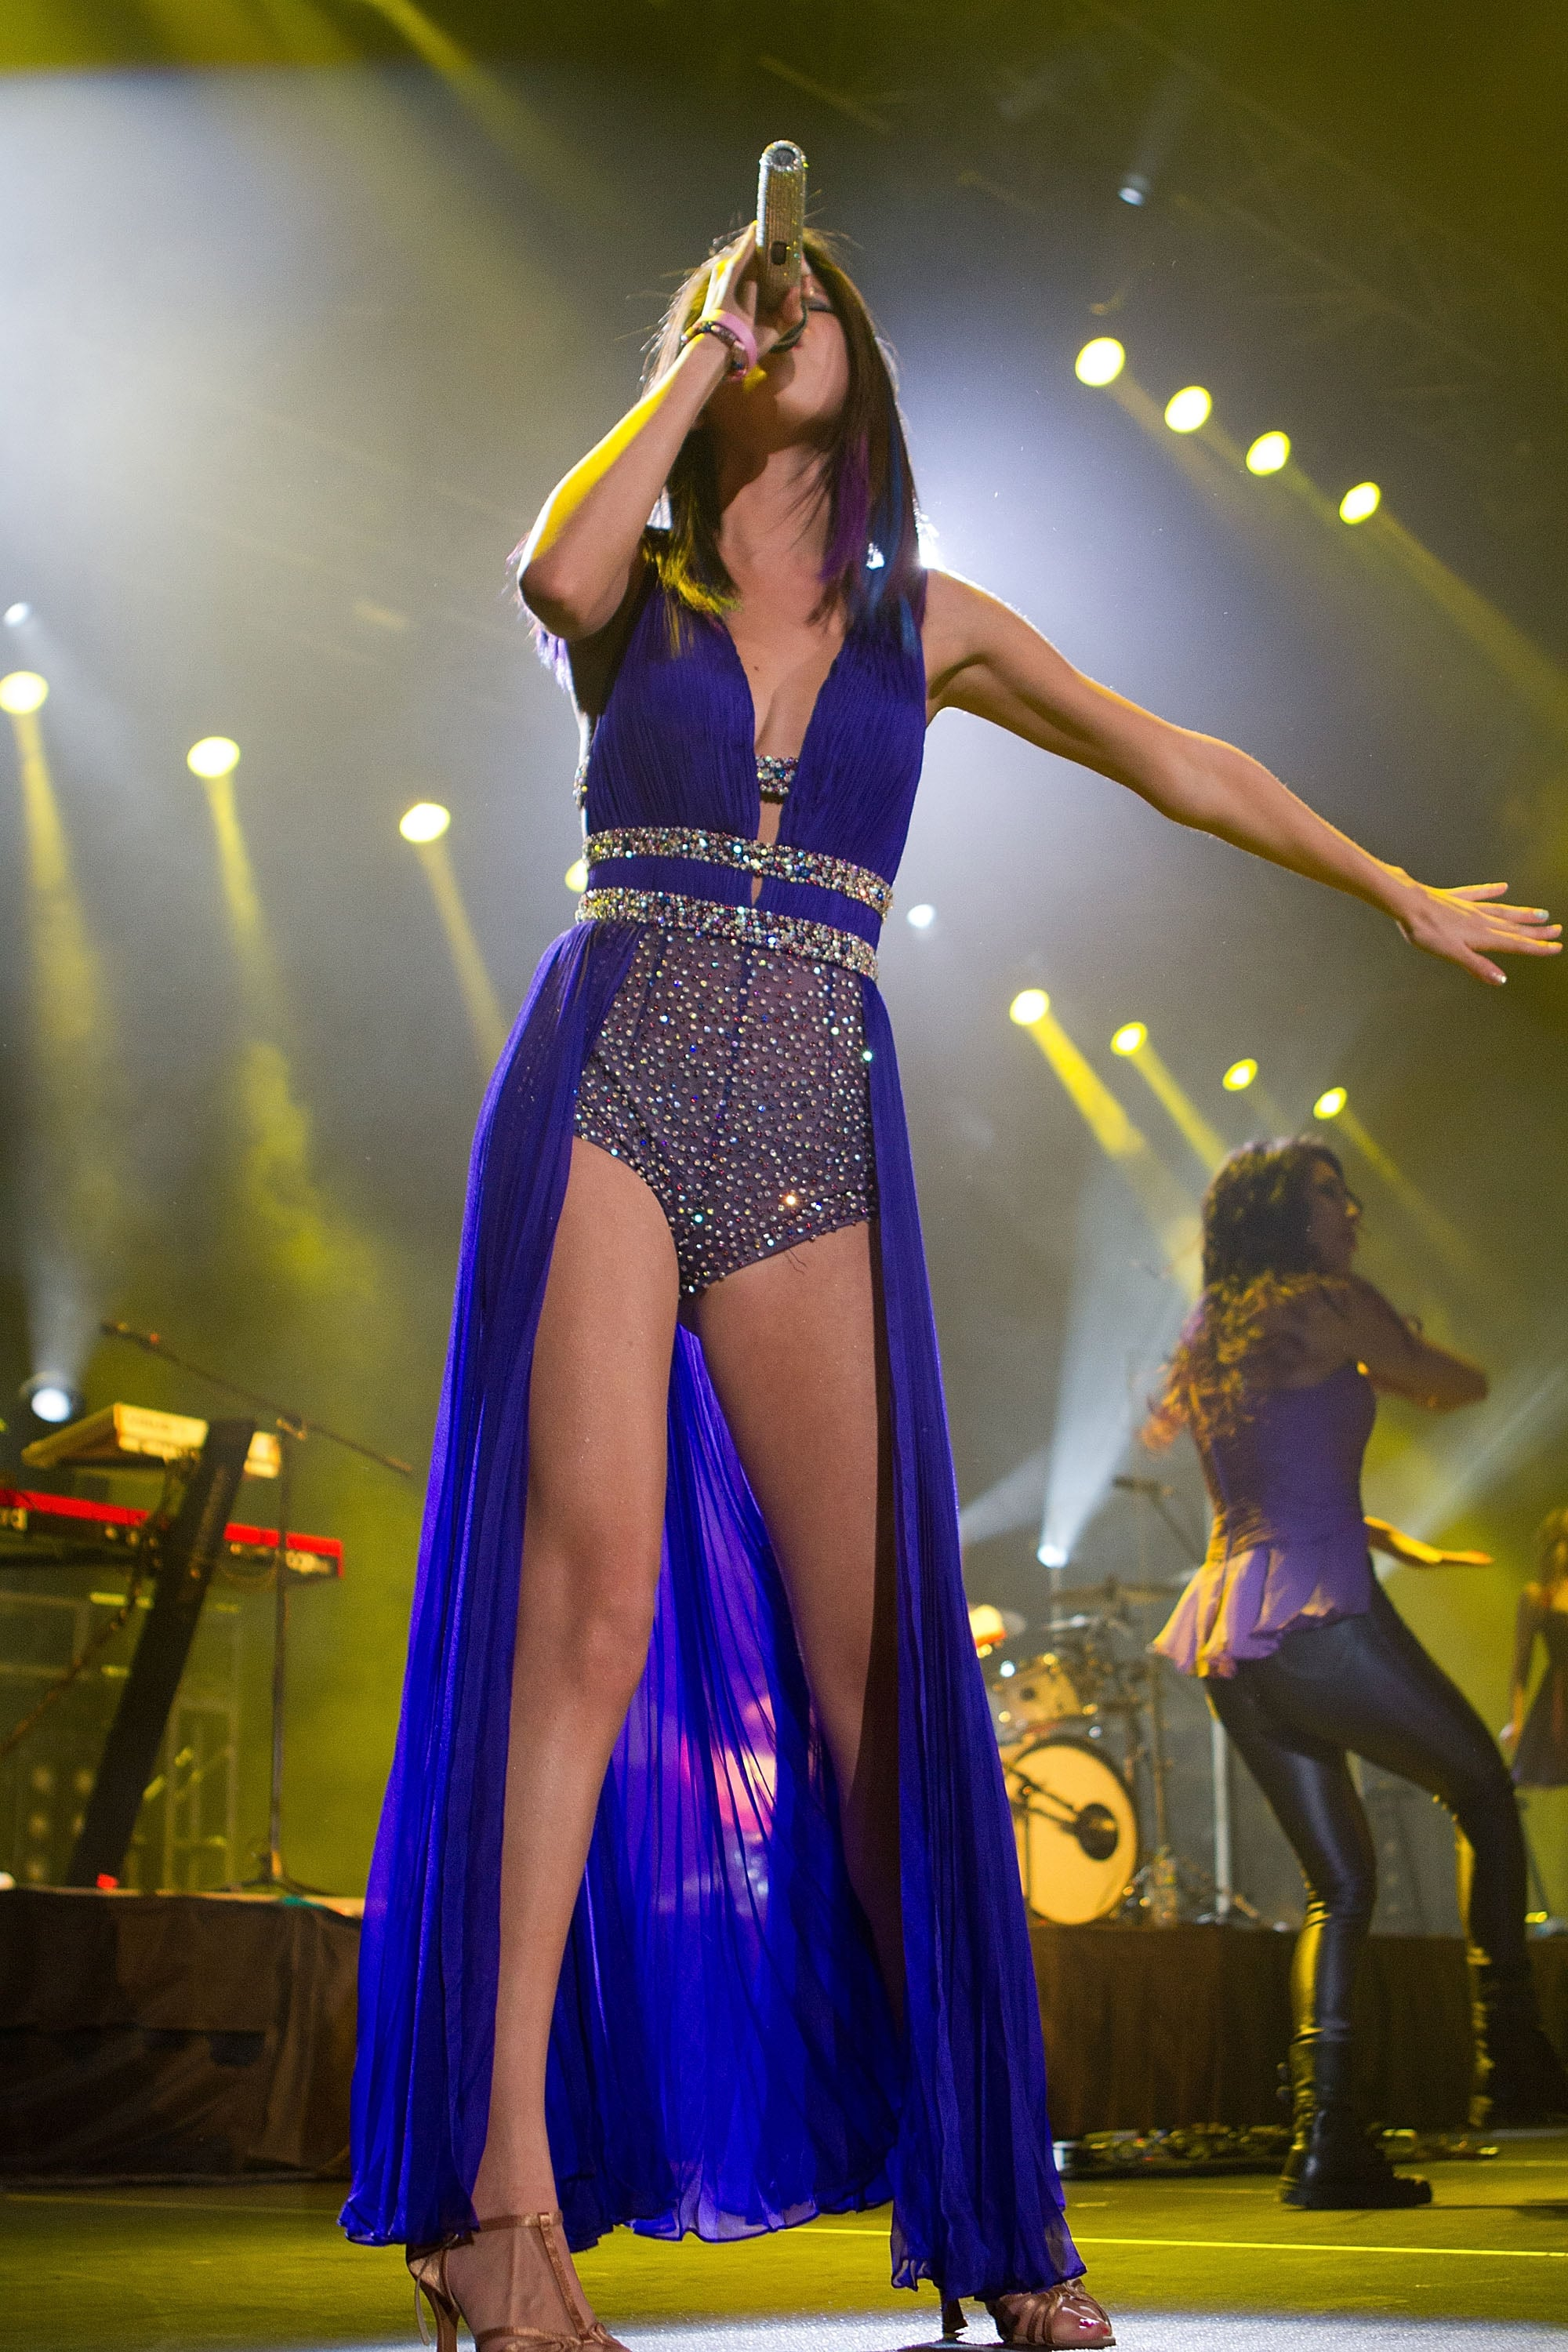 Selena performed a show in Mexico in a statement-making beaded short suit in 2012.